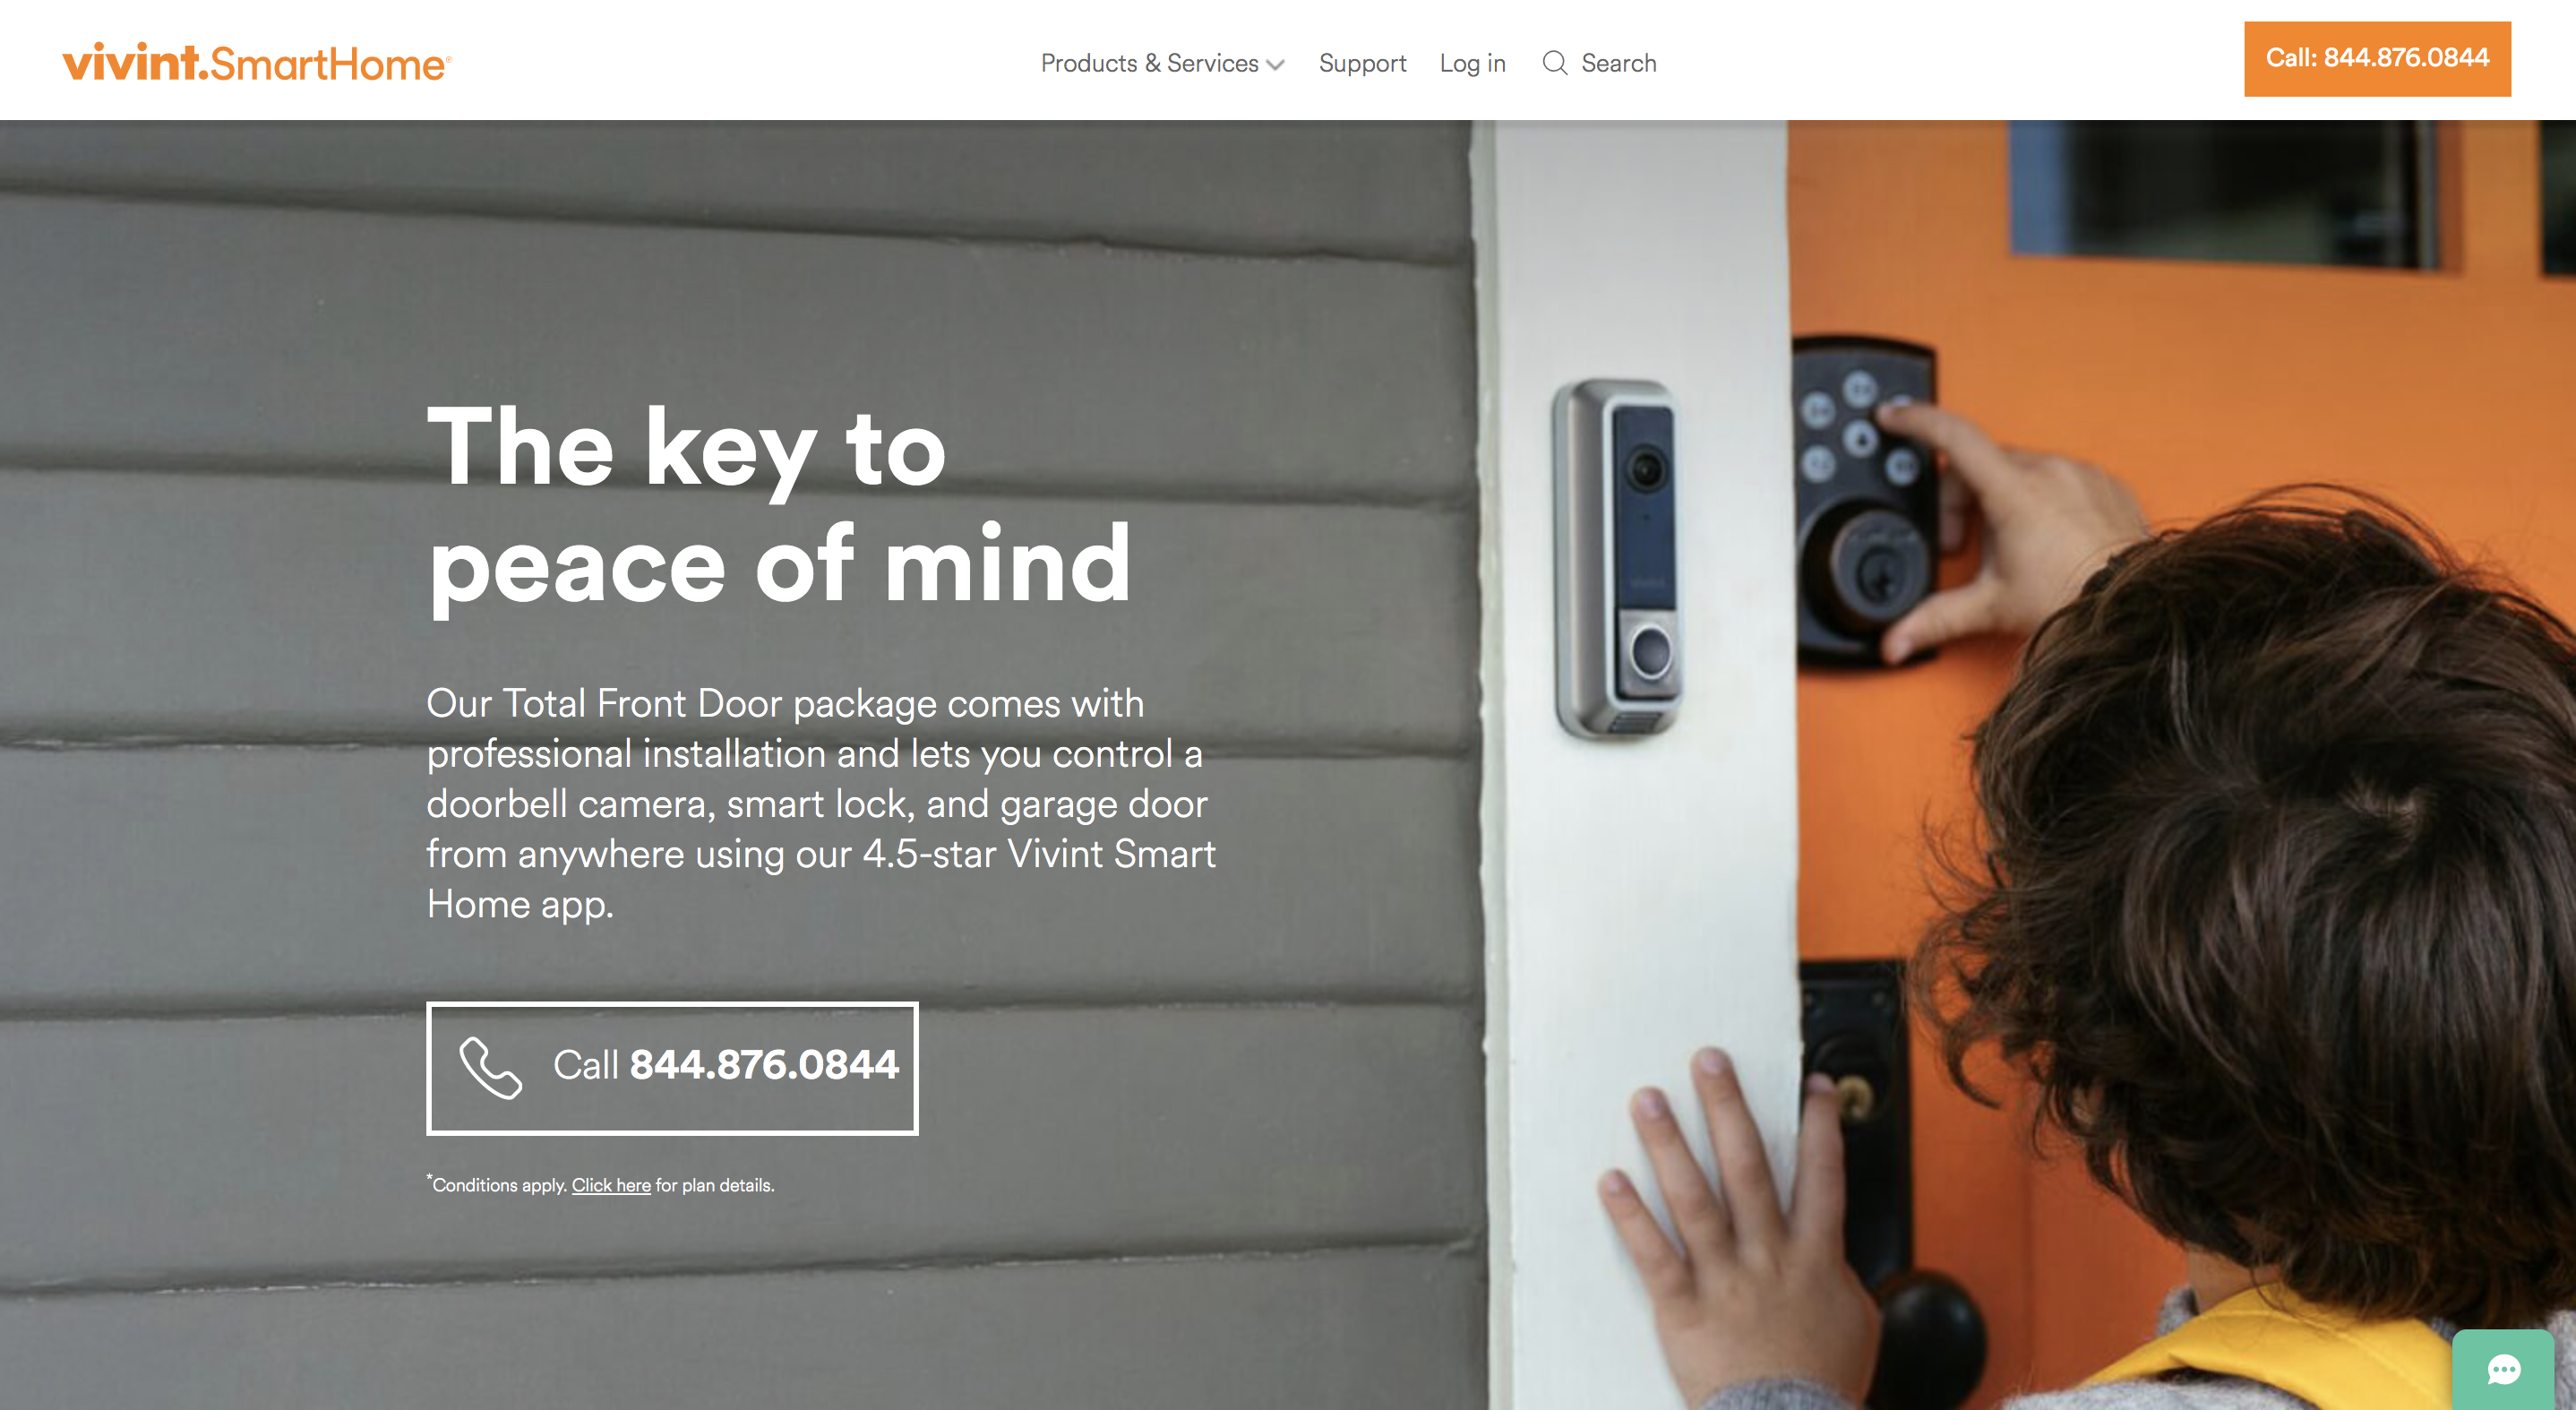 click to call options on vivint smart home website